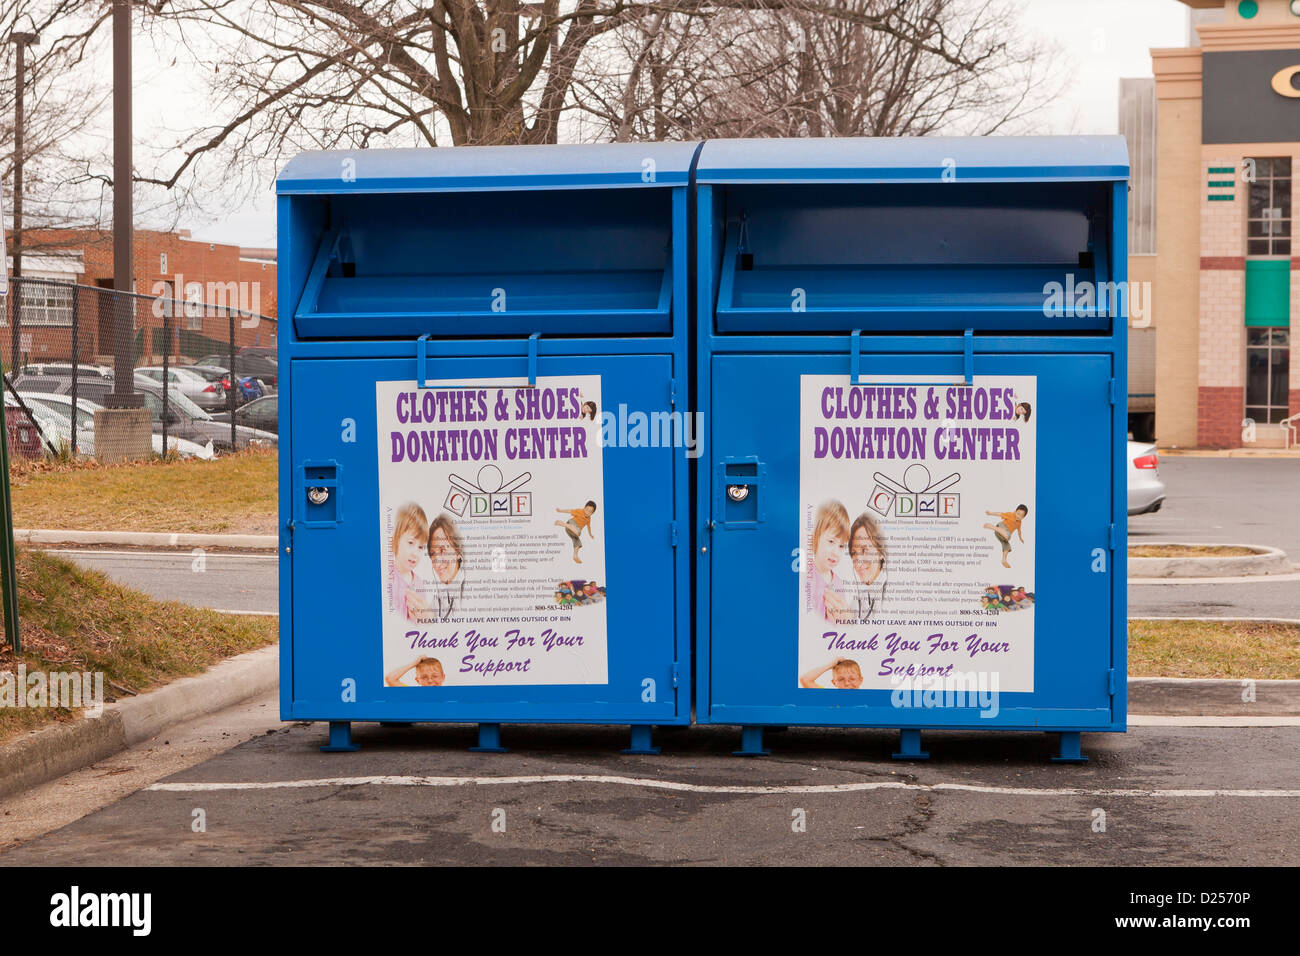 Clothes and shoes donation bins - USA - Stock Image